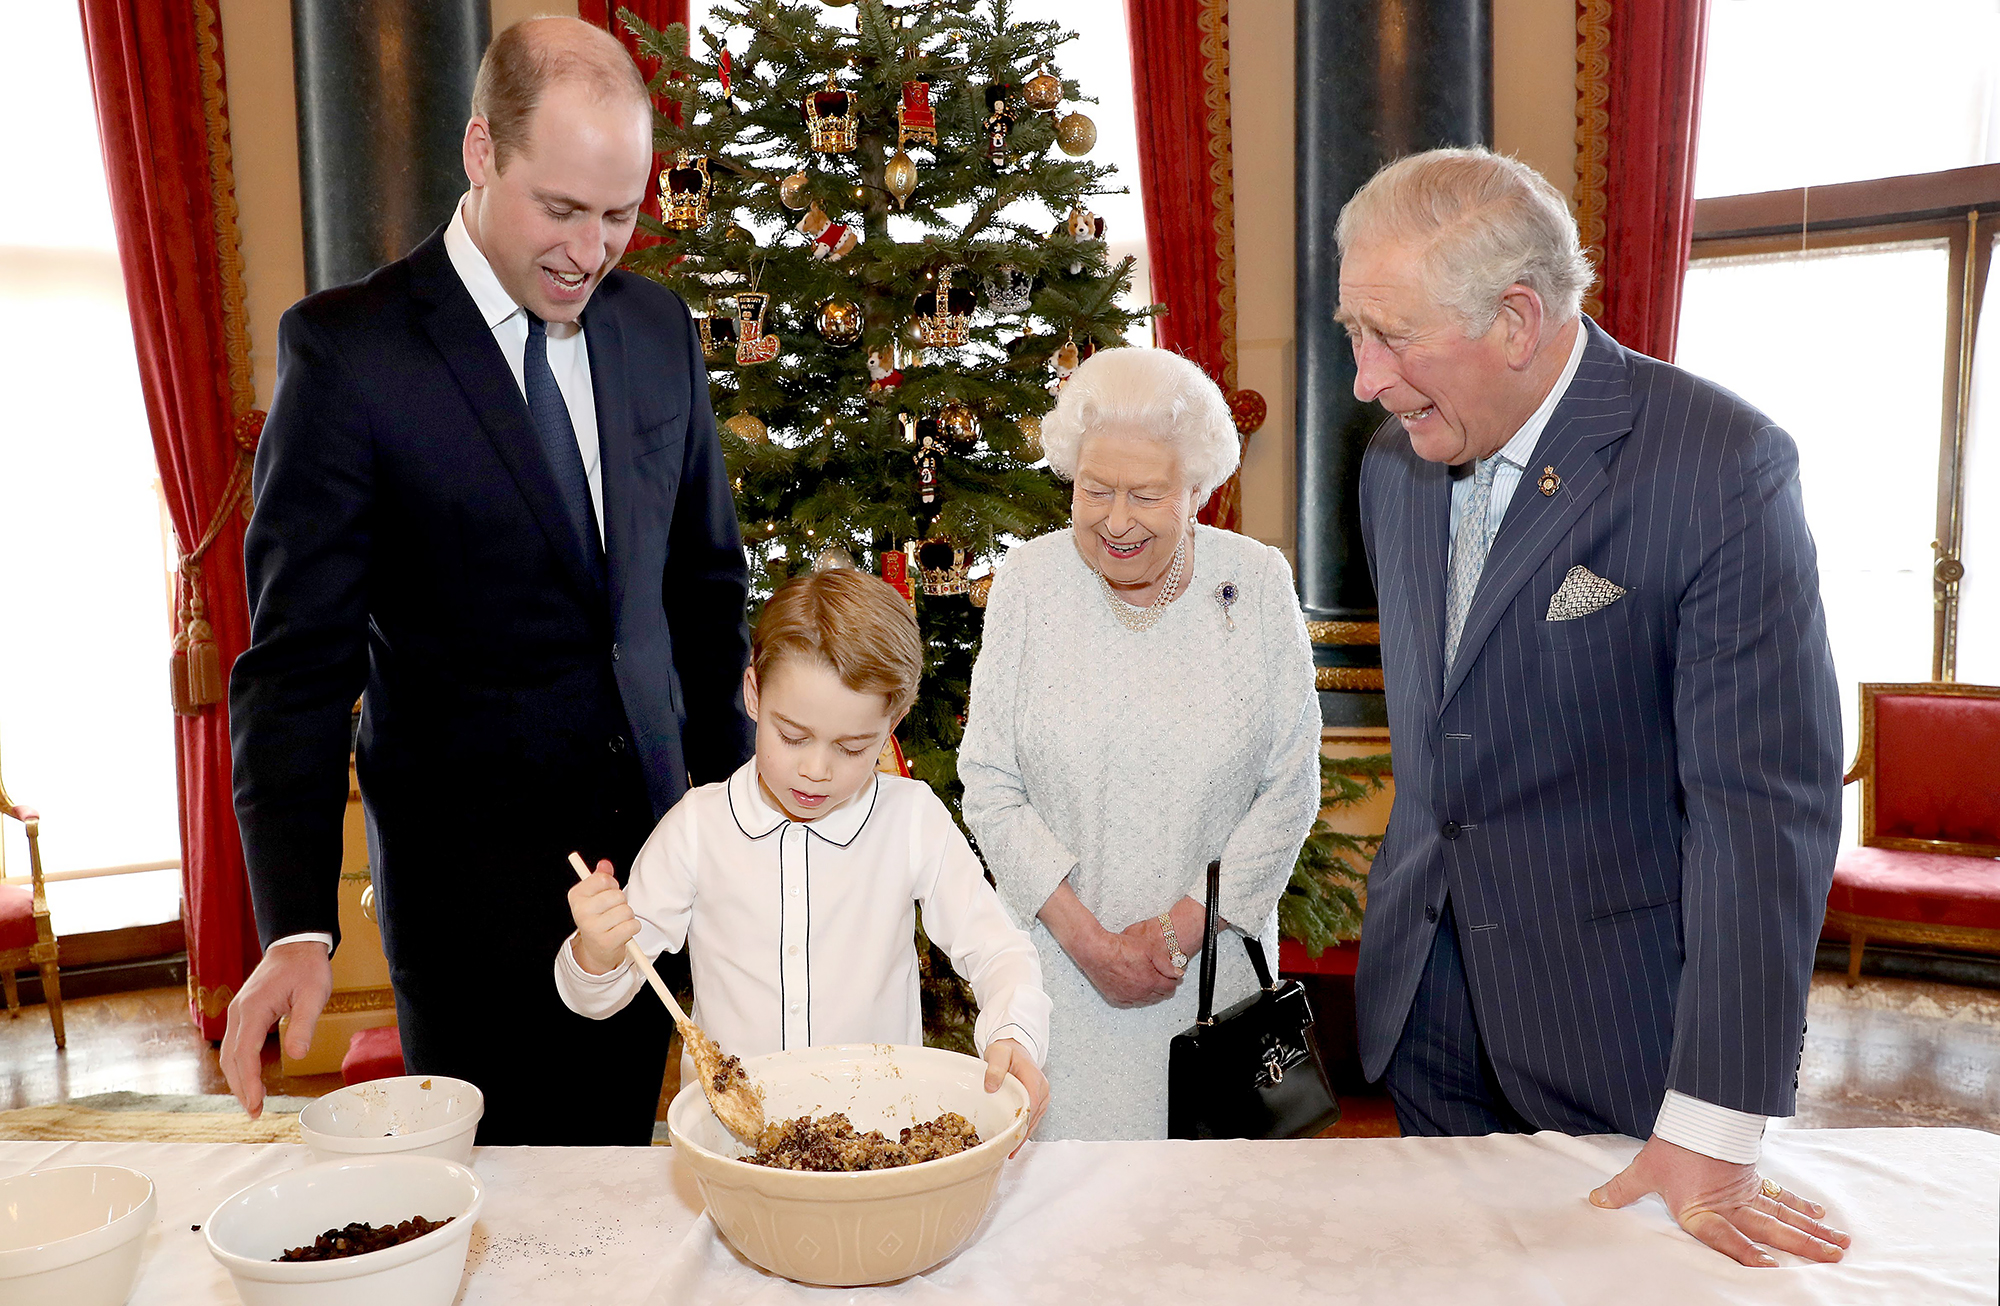 Prince George Adorably Struggles to Mix Christmas Pudding in New Video and the Queen Laughs